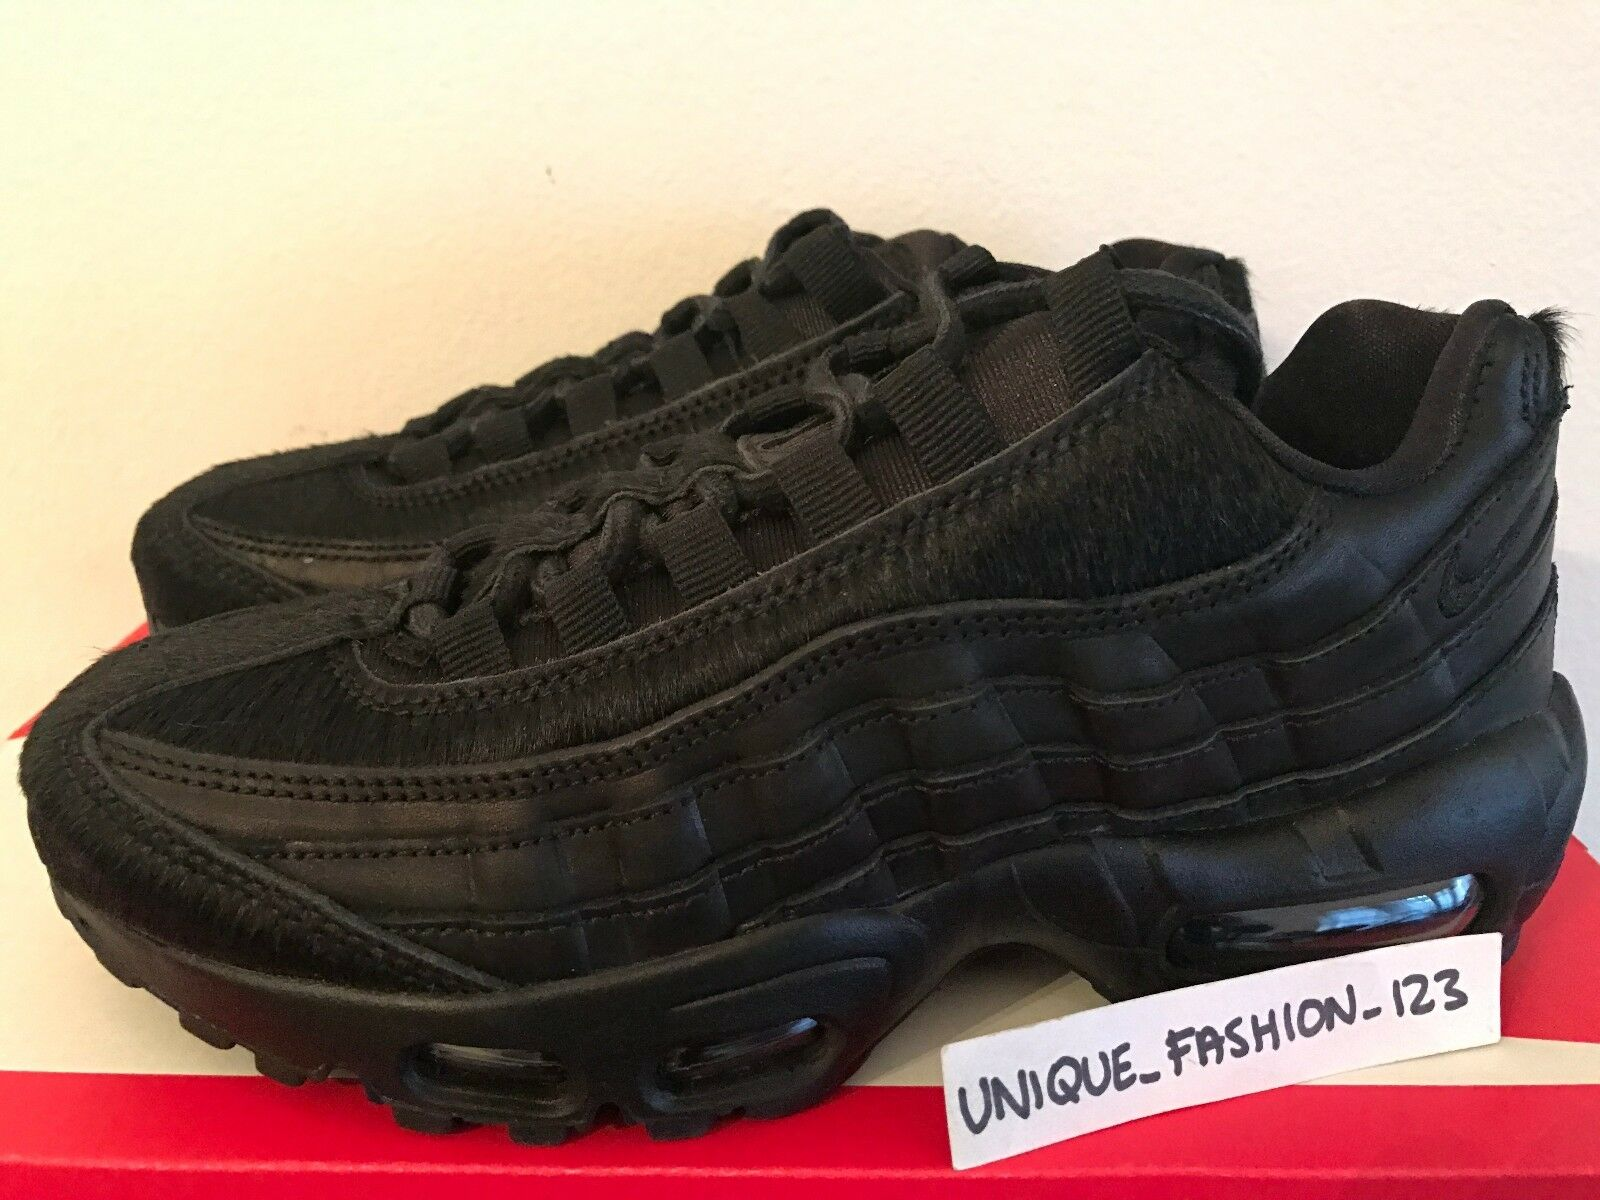 WMNS NIKE AIR MAX 95 PRM US 6.5 37.5 TRIPLE BLACK PONY HAIR PACK 807443-004 The latest discount shoes for men and women